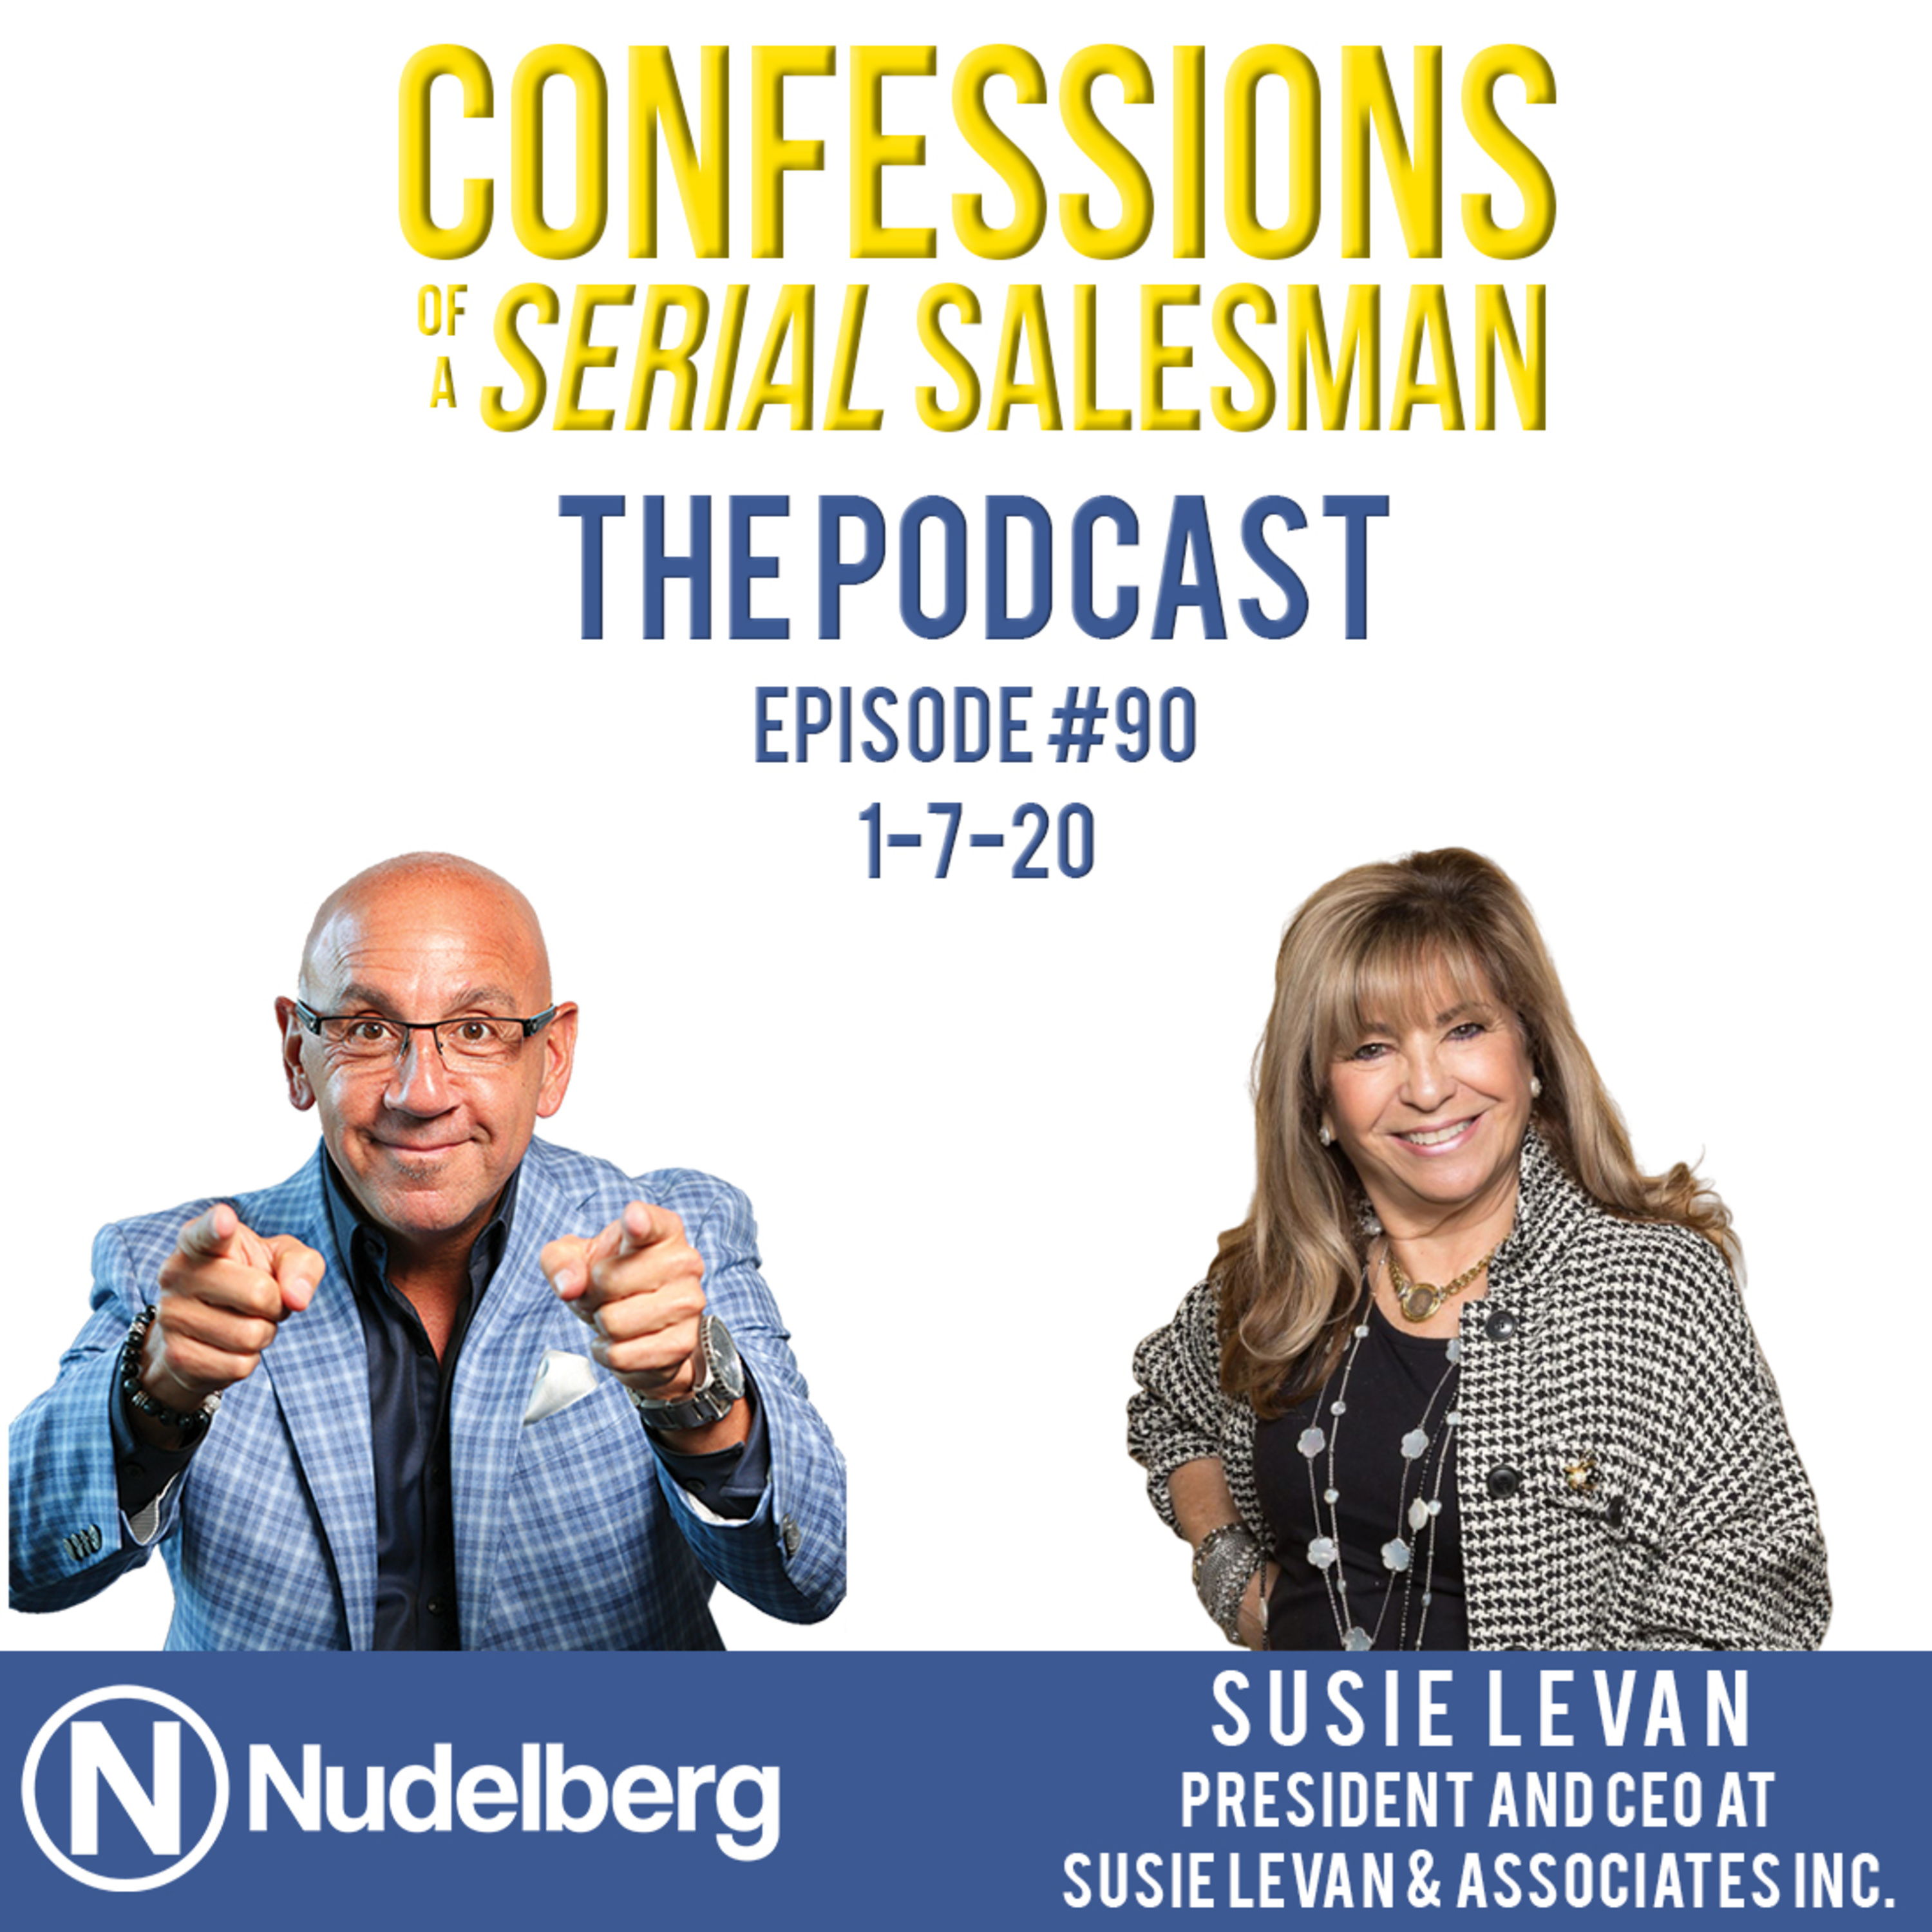 Confessions of a Serial Salesman The Podcast with Susie Levan, President and CEO at Susie Levan & Associates Inc.